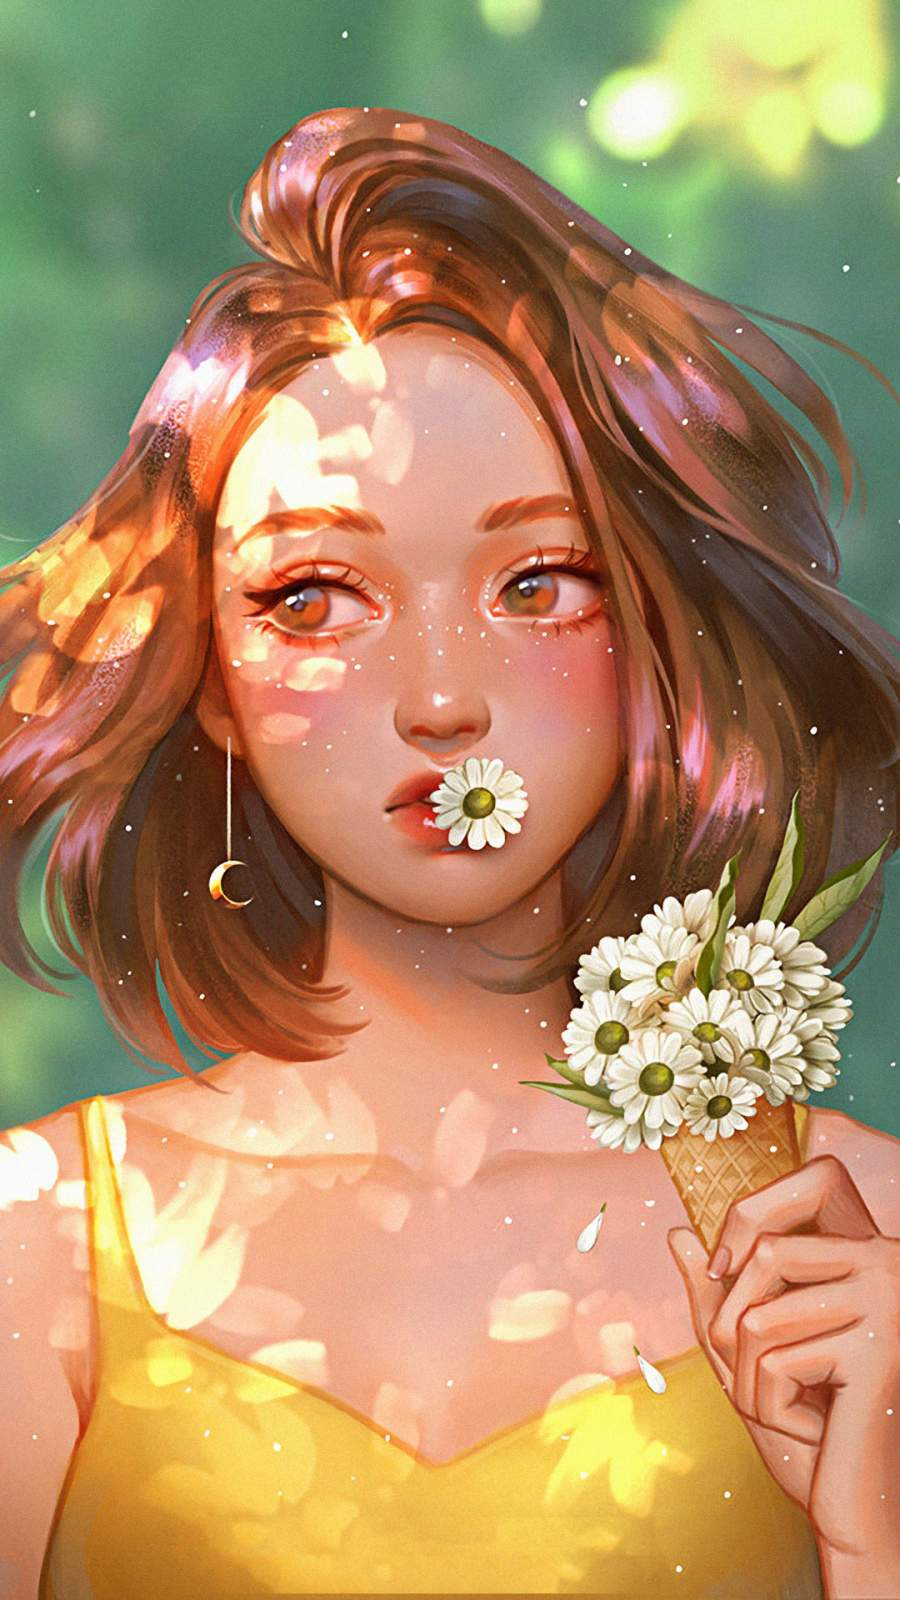 Girl with Daisy Flowers iPhone Wallpaper